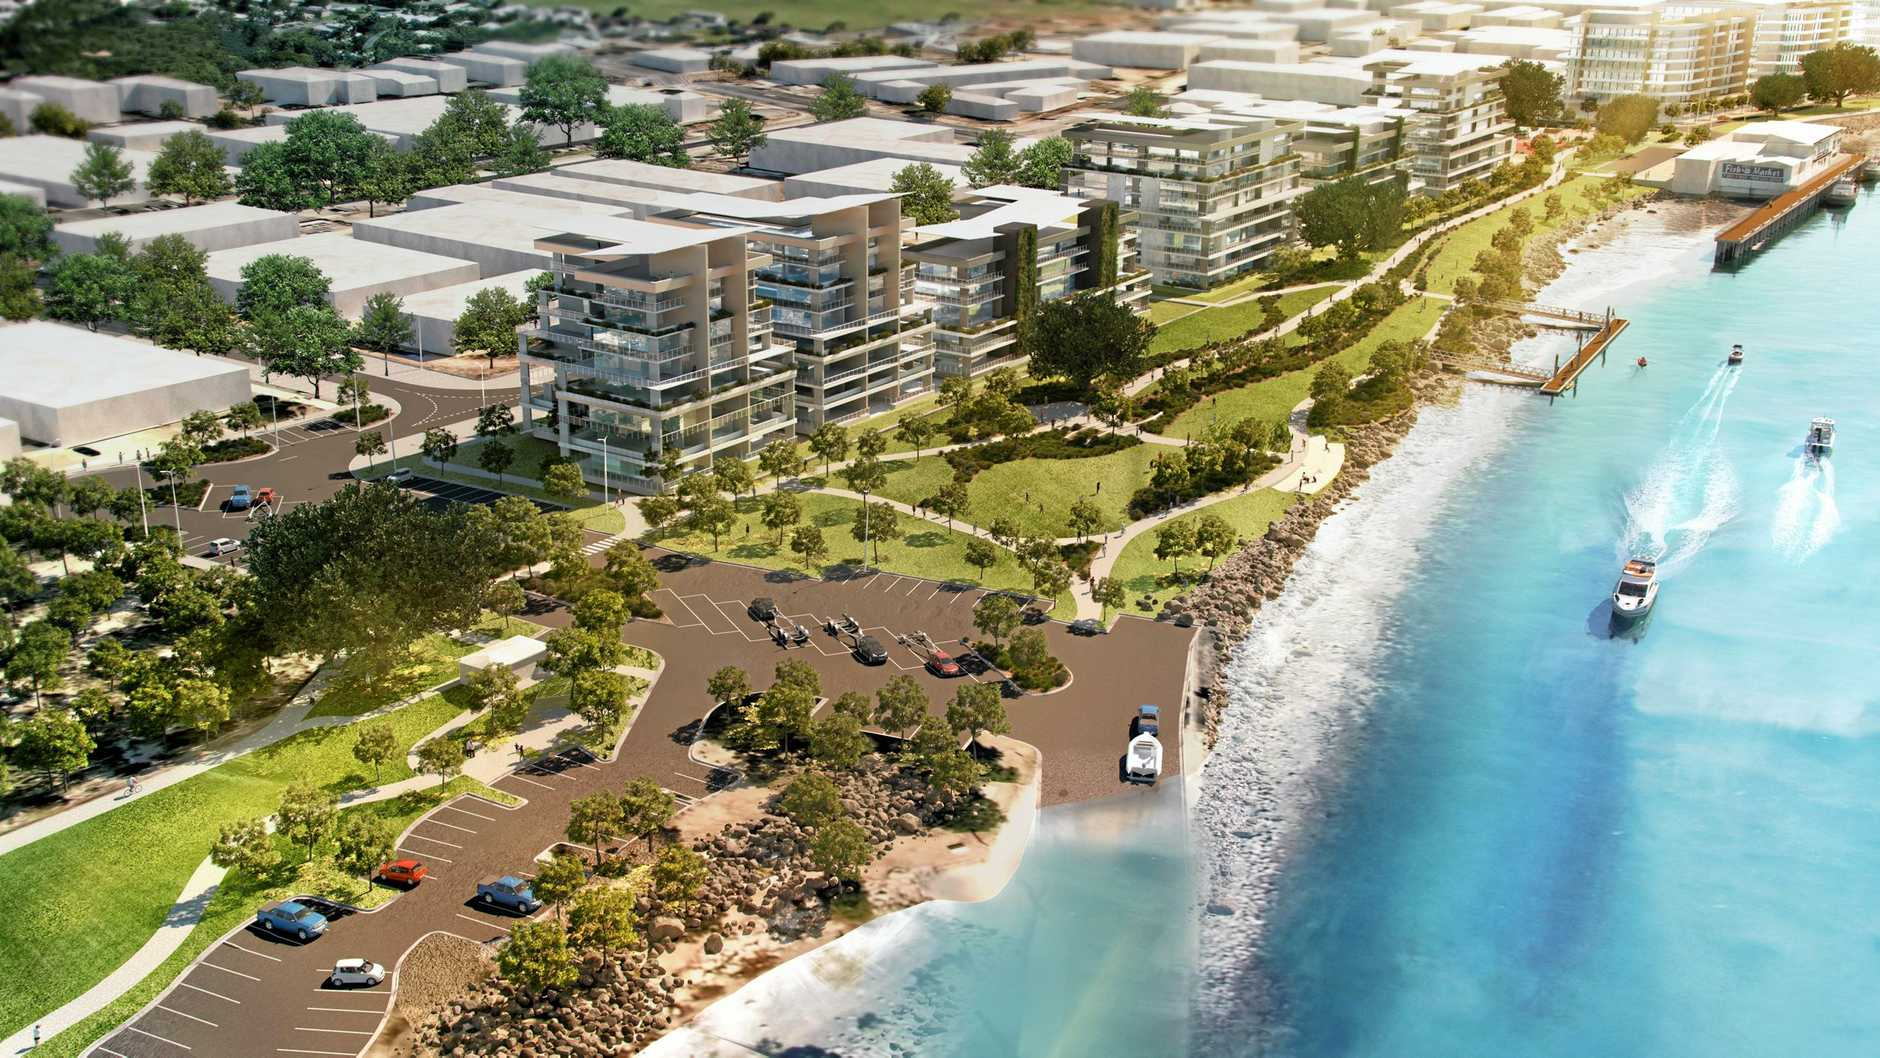 An artist's impression of potential development Precinct Two of the Mackay Waterfront Development on the Pioneer River.